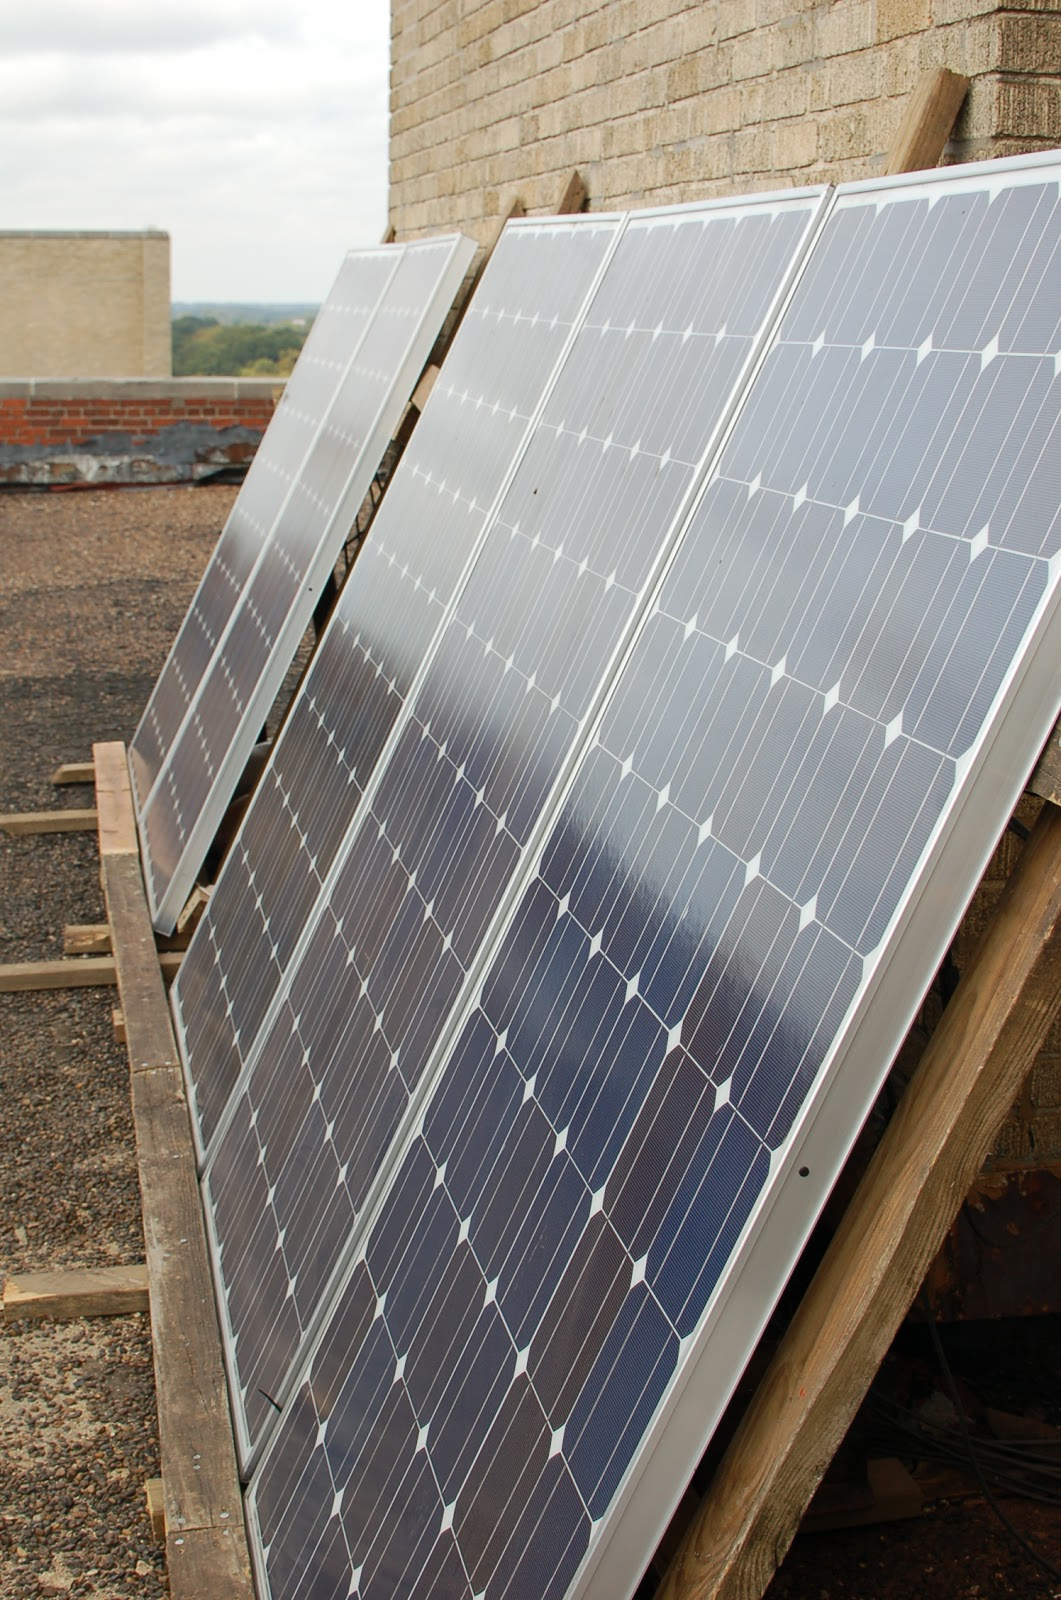 Solar Panels Have Been A Large Part Of The California Market And Recent Study Was Conducted In San Go Area On